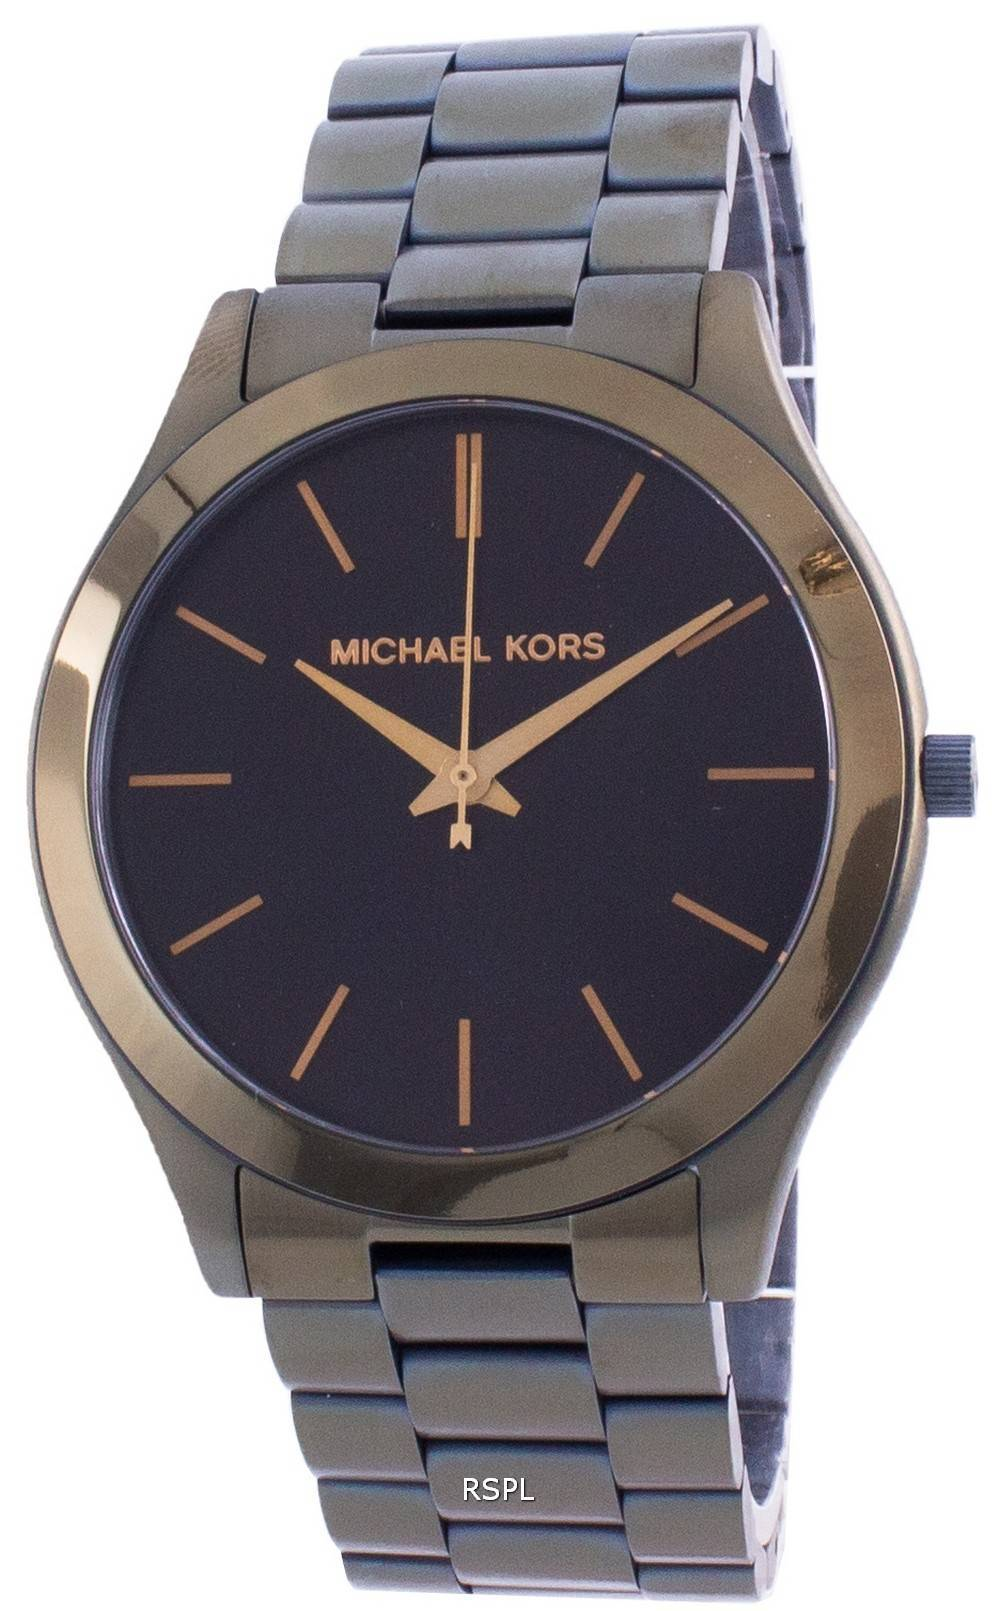 Michael Kors Slim Runway MK8715 Quartz Men's Watch